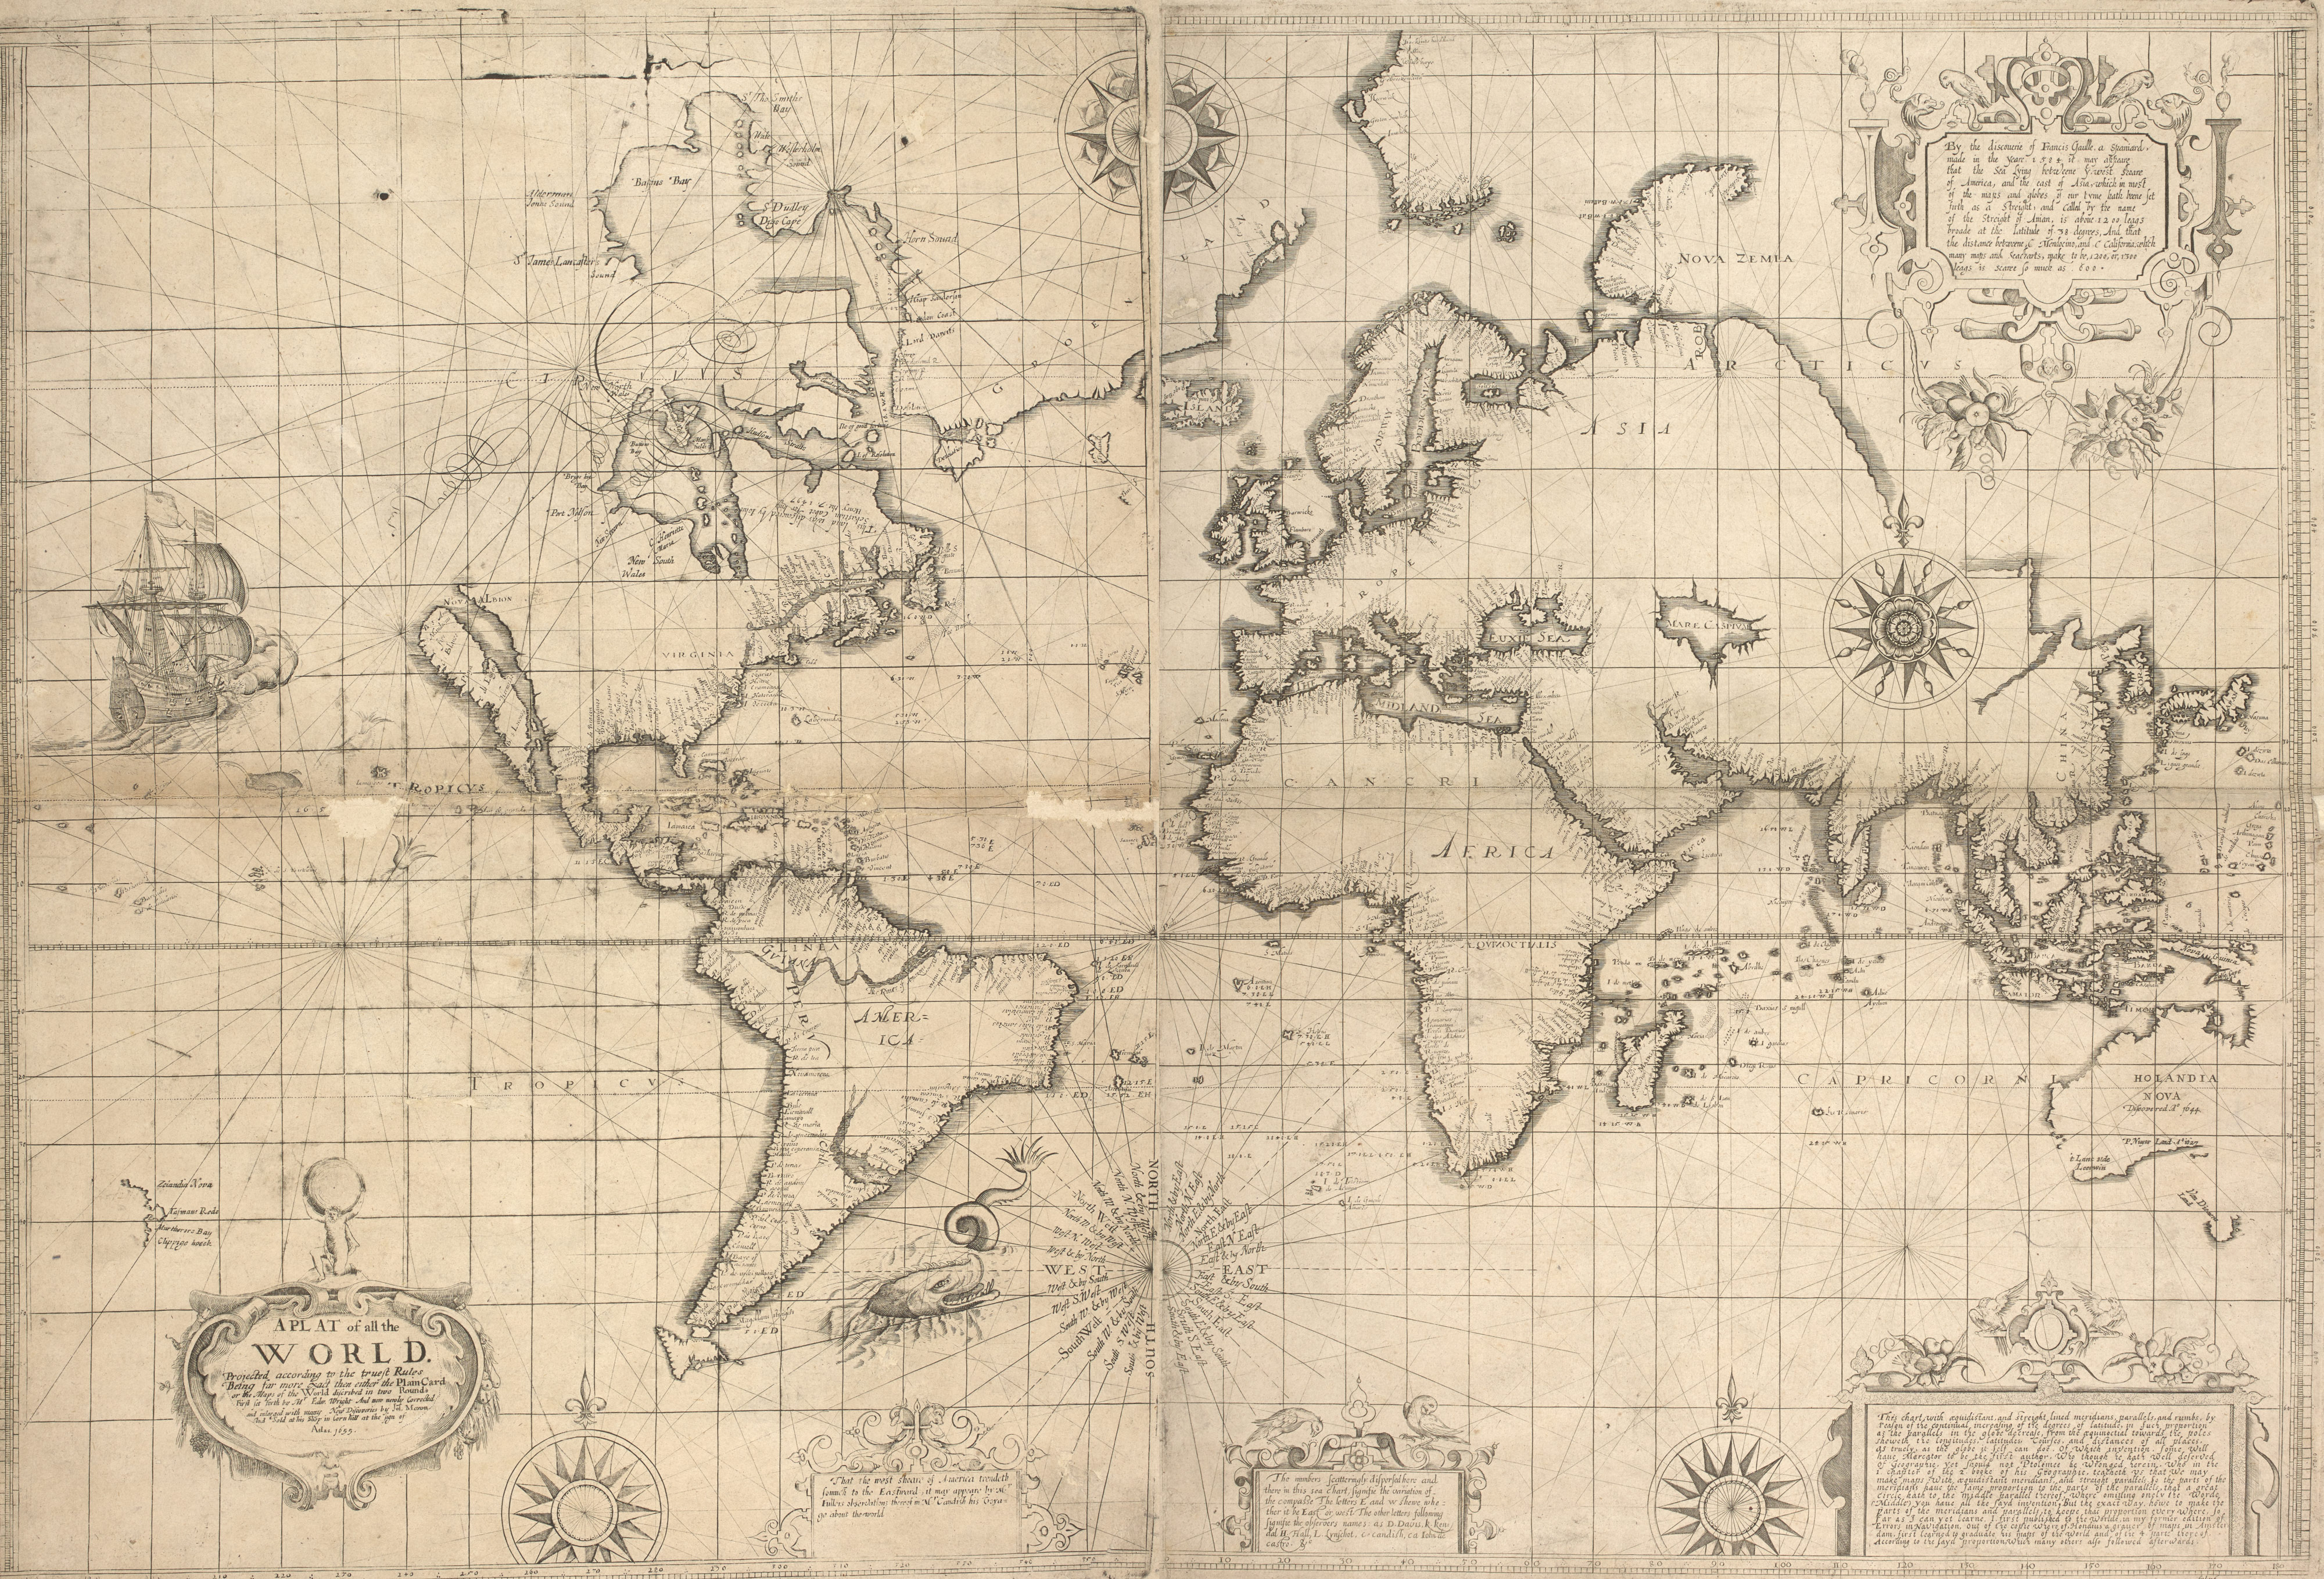 A plat of the world (C.31.e.25)